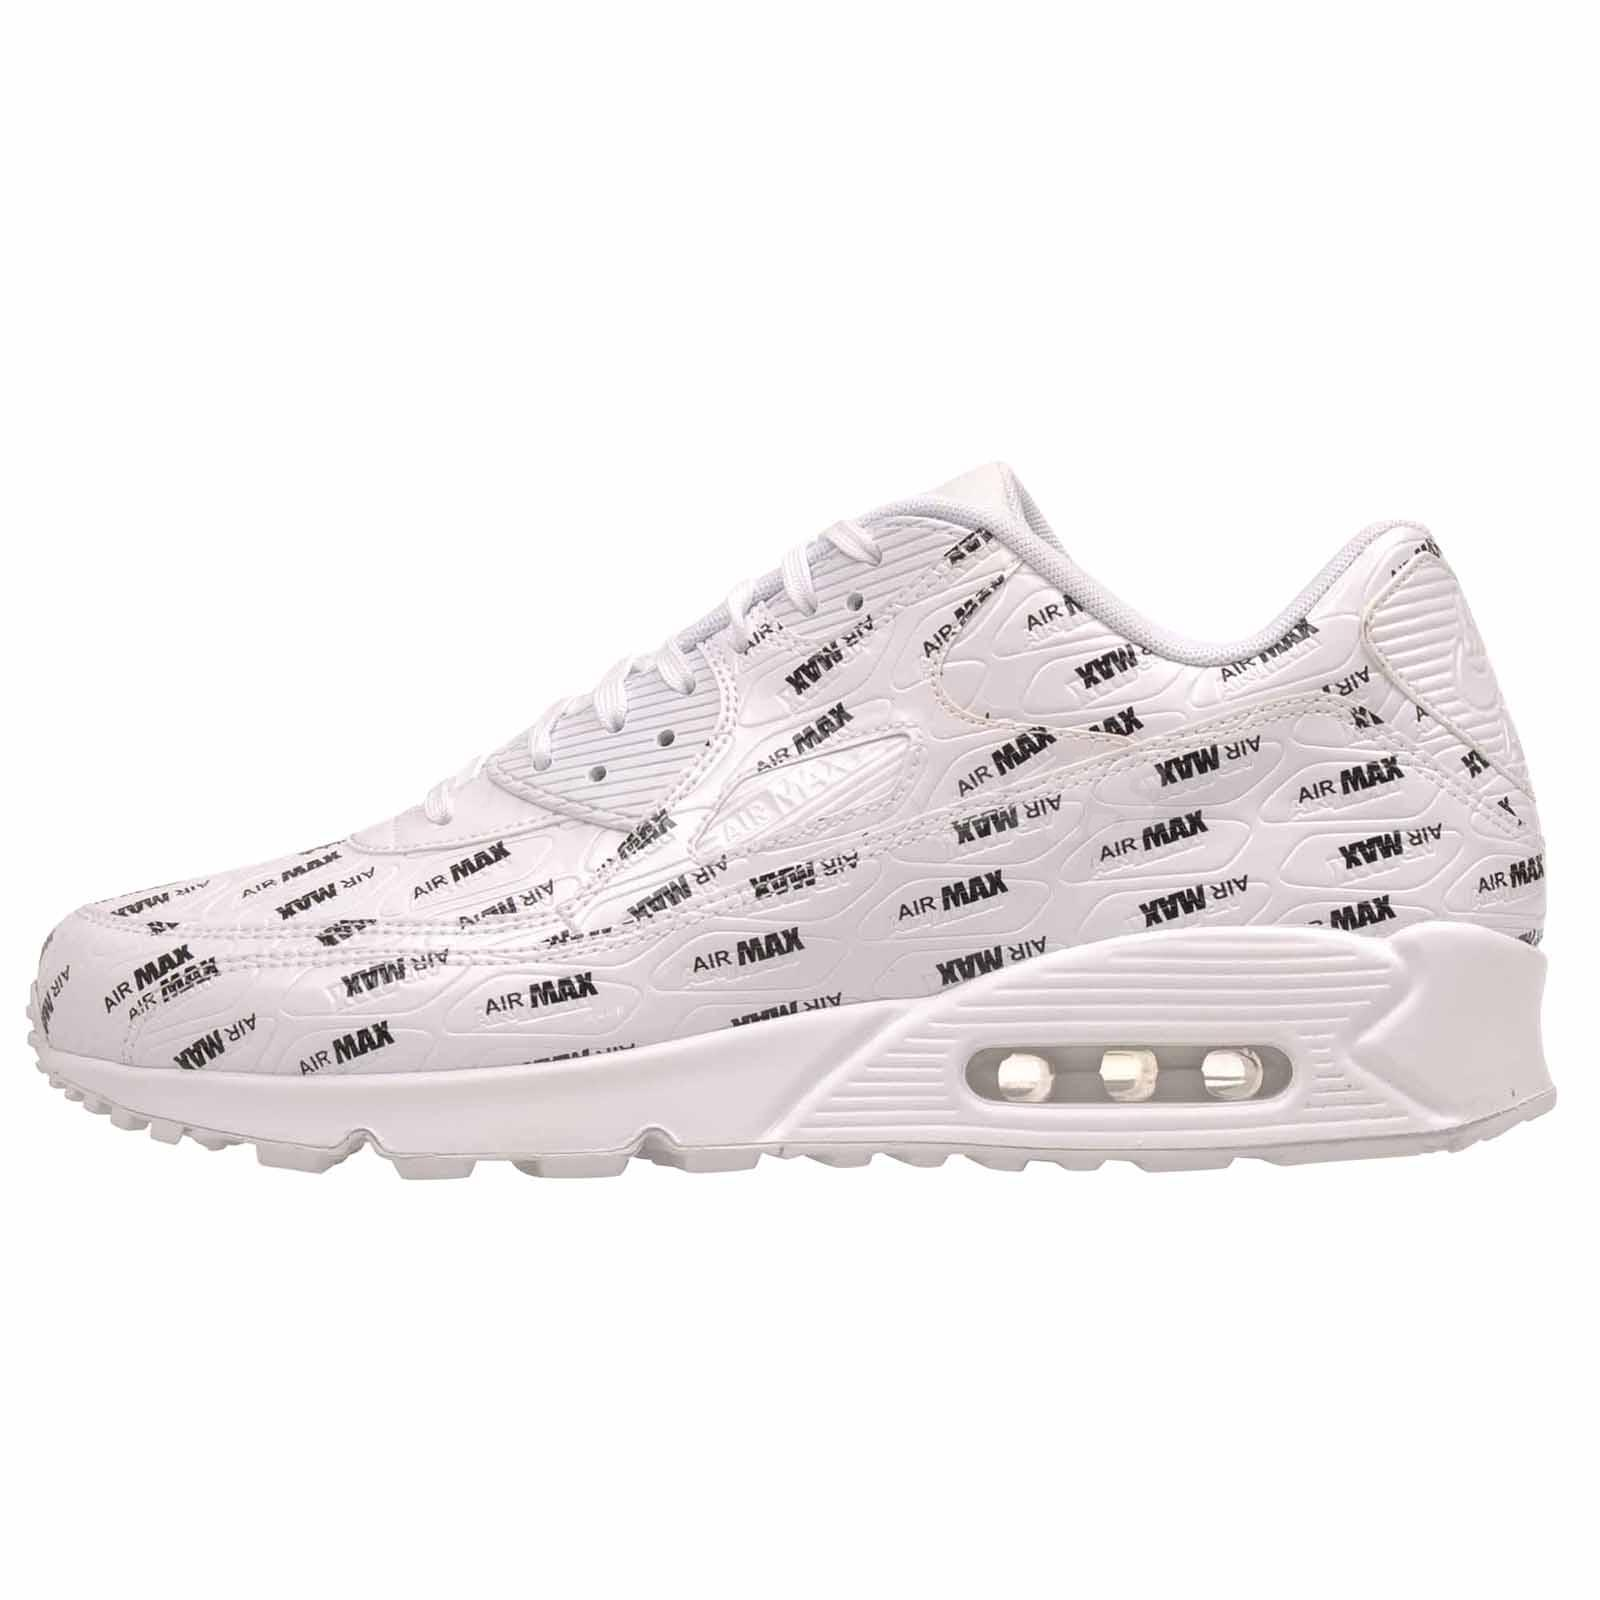 low cost 10e42 0ba4e Details about Nike Air Max 90 Premium All Over Print Running Mens Shoes  White Black 700155-103